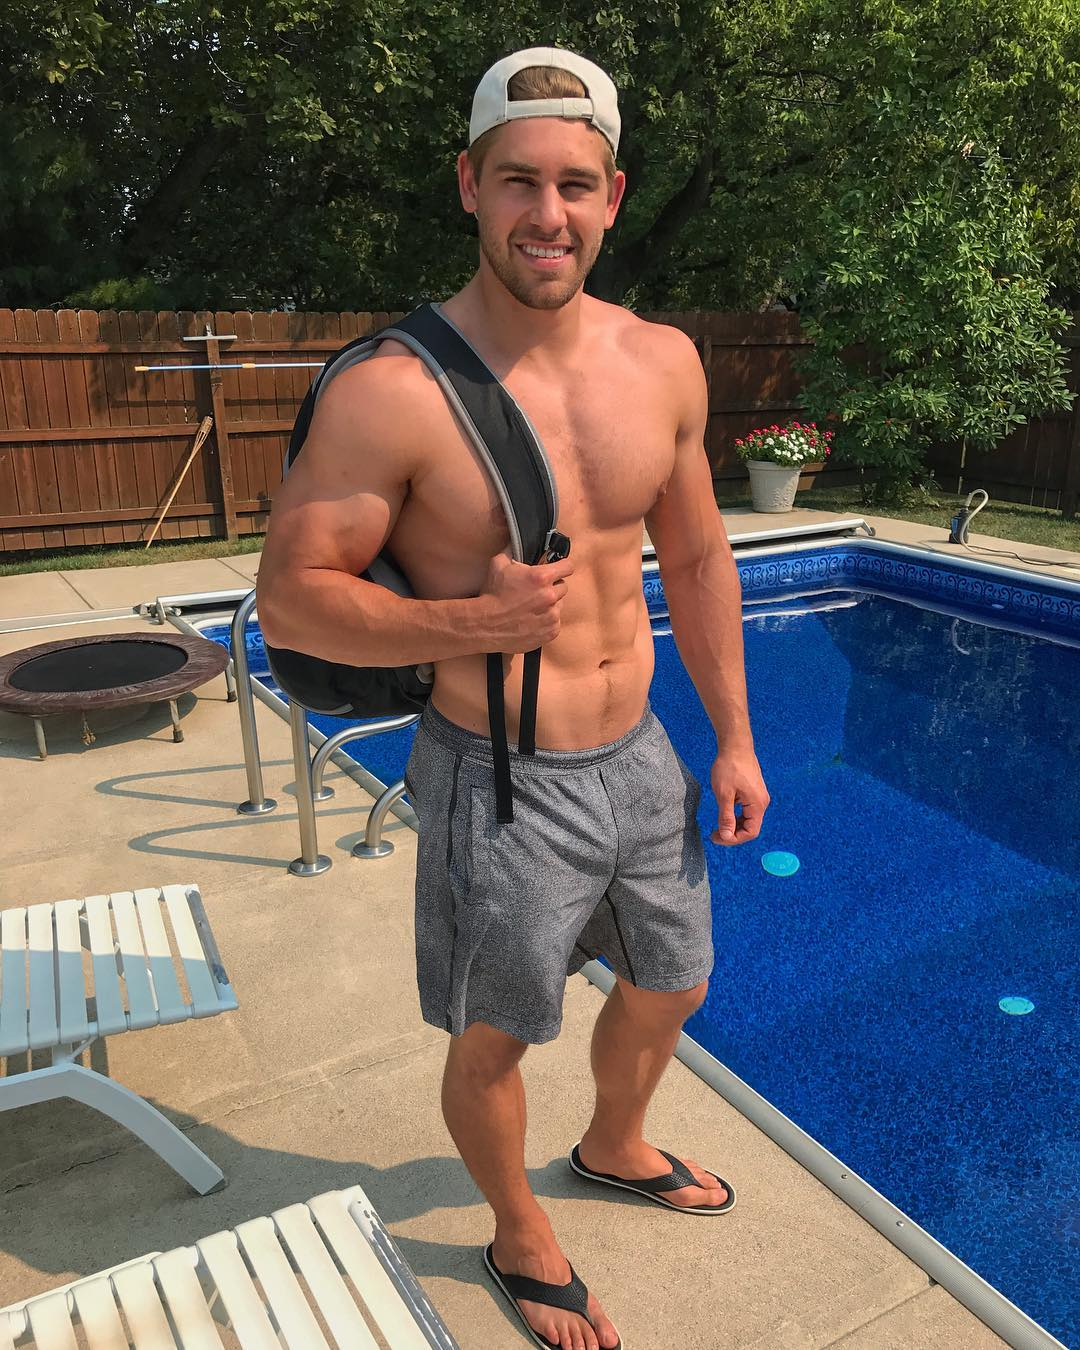 young-fit-shirtless-college-dude-smiling-pool